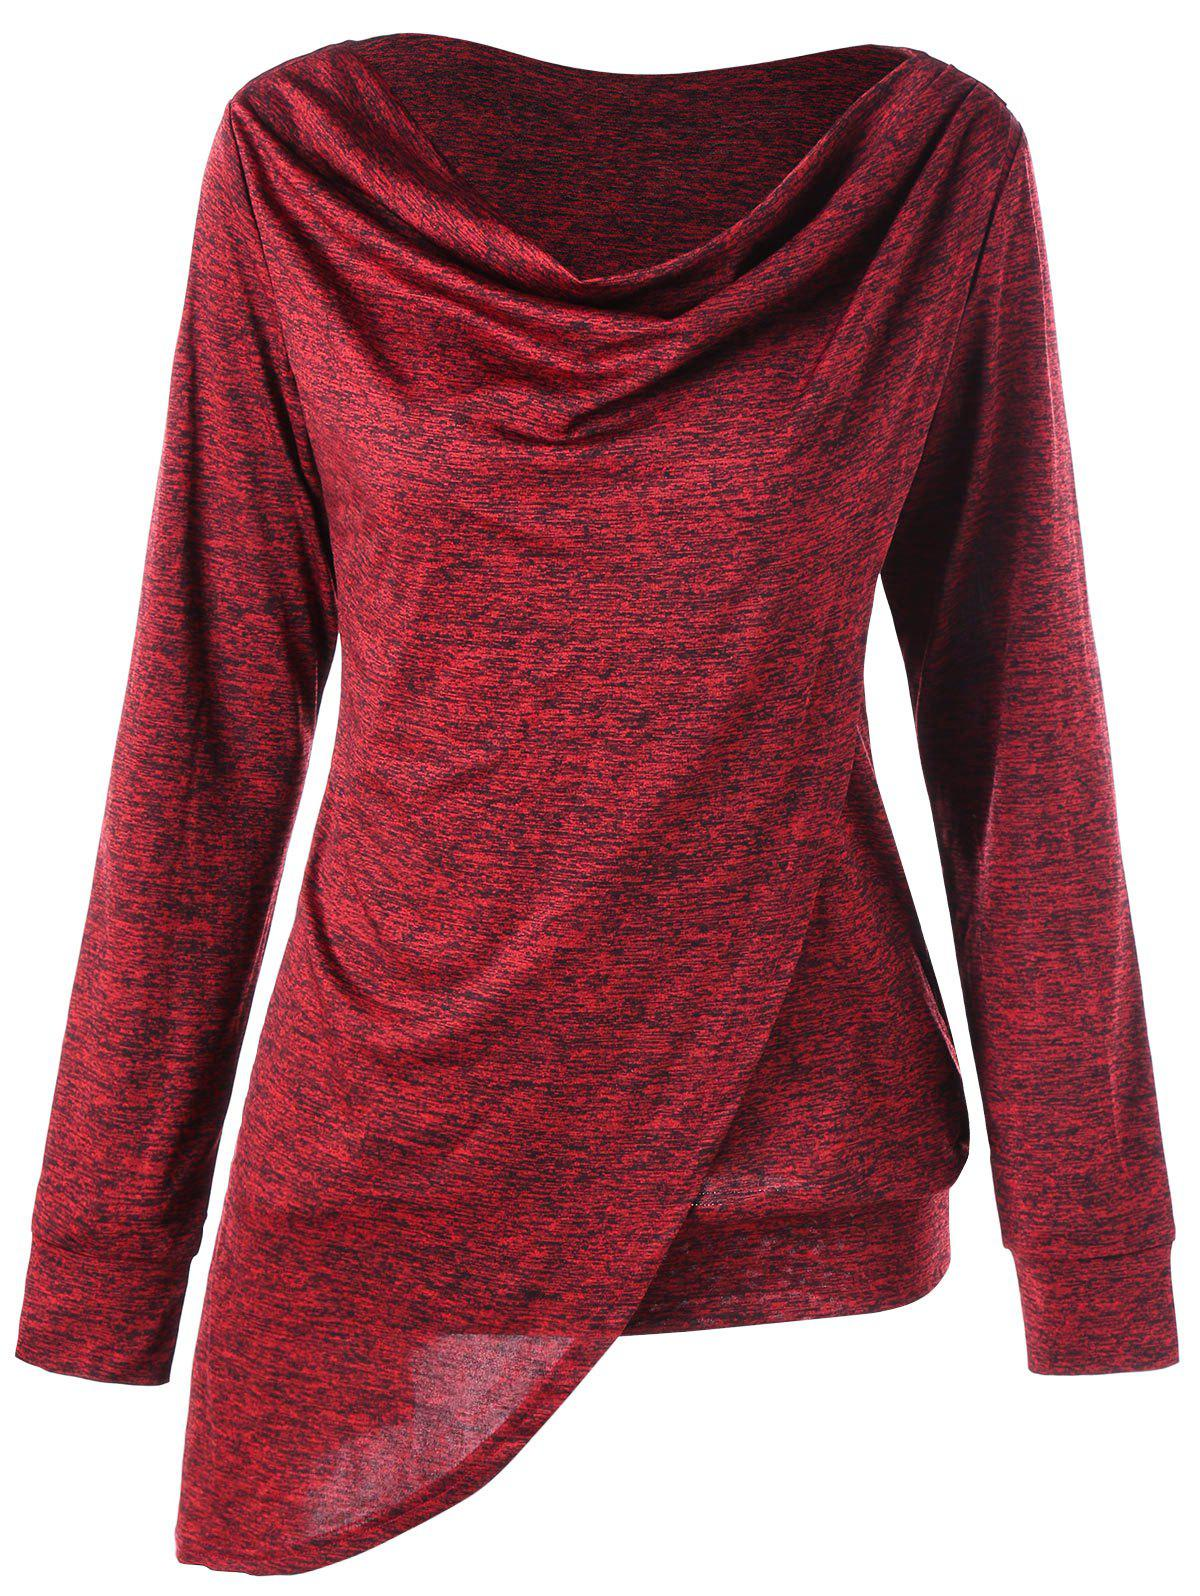 Marled Cowl Neck Overlap Asymmetric Sweatshirt - RED 2XL